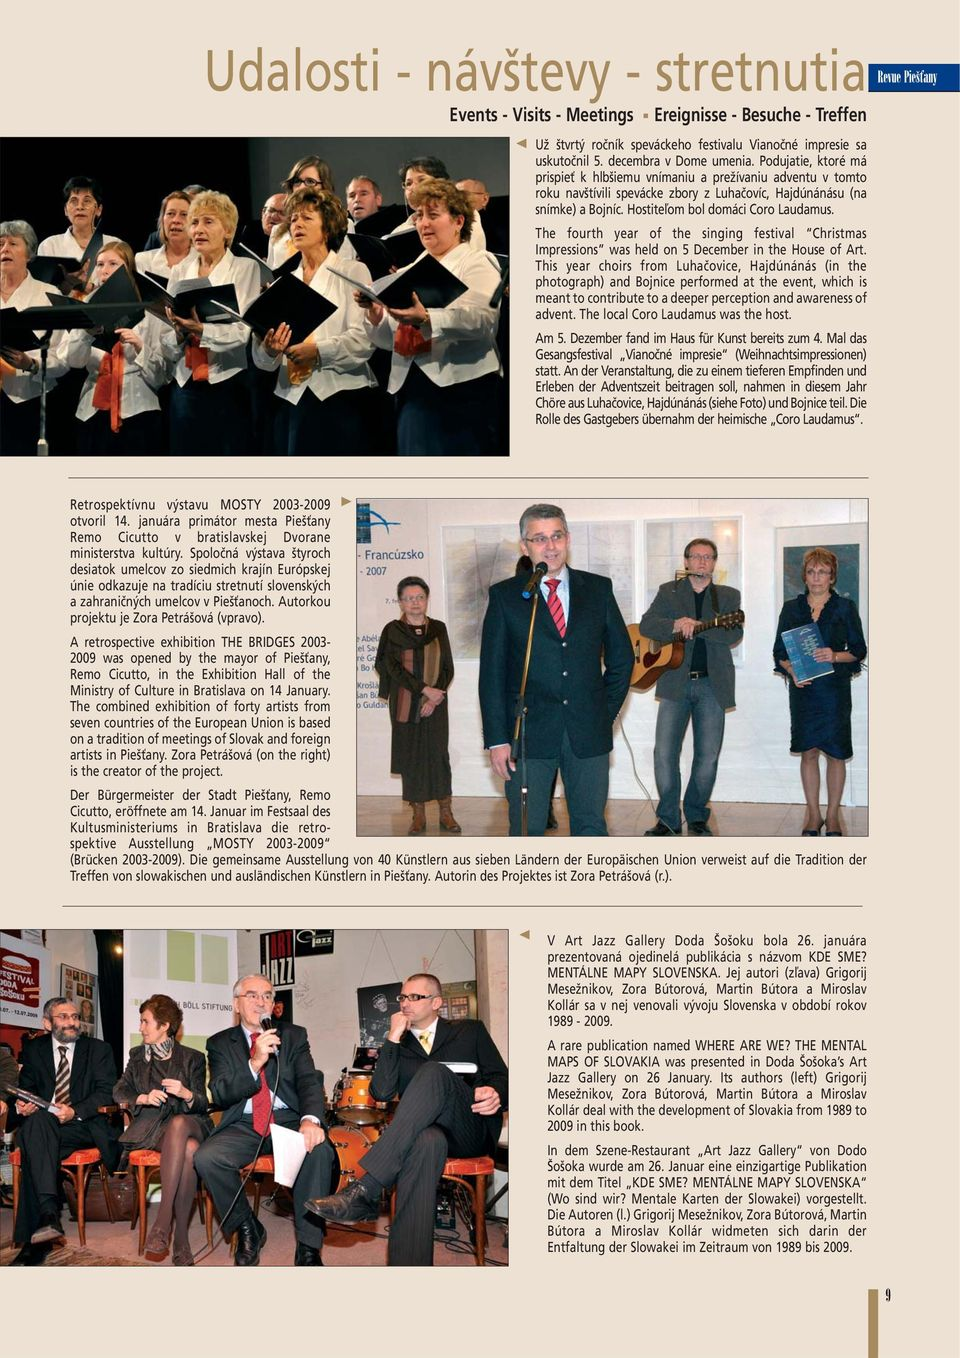 The fourth year of the singing festival Christmas Impressions was held on 5 December in the House of Art.